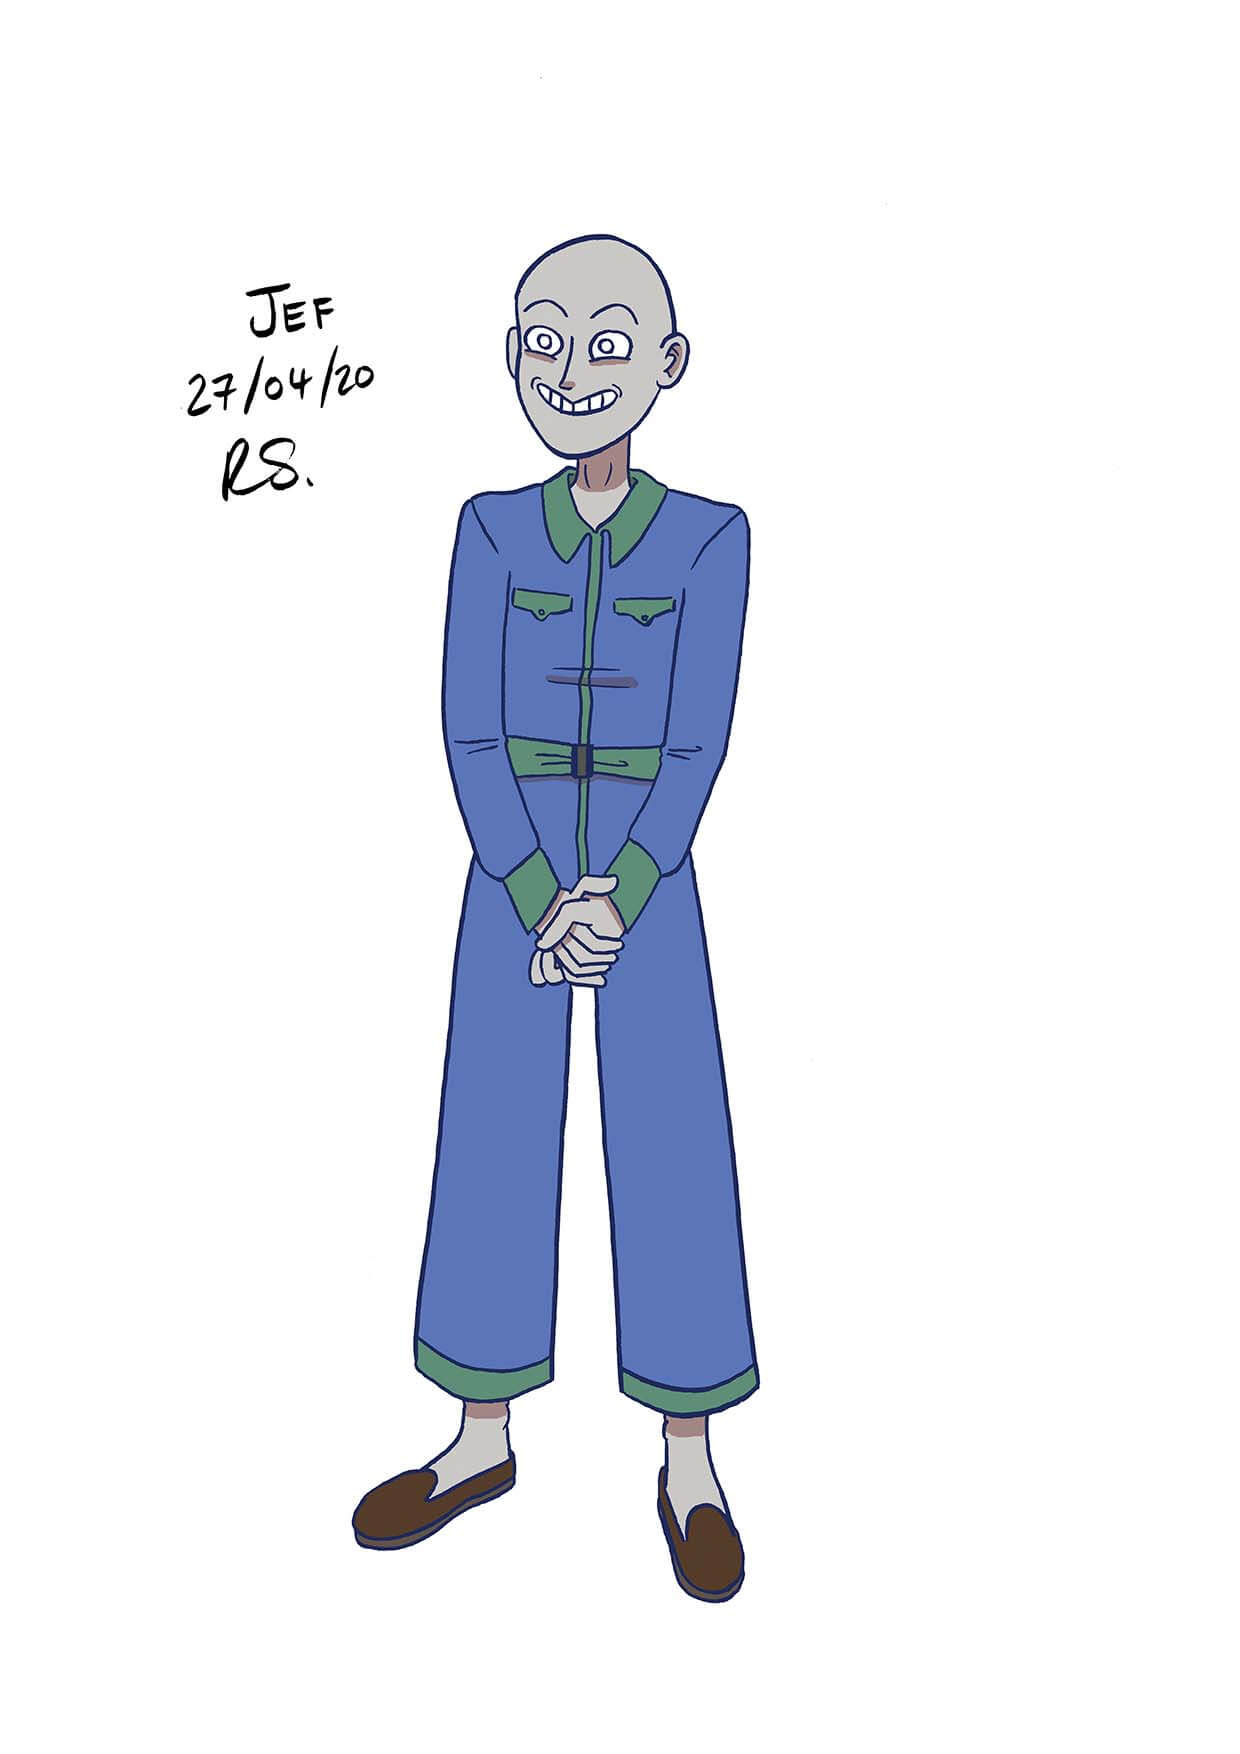 JEF character from The Rev, voiced by Juliet Aubrey